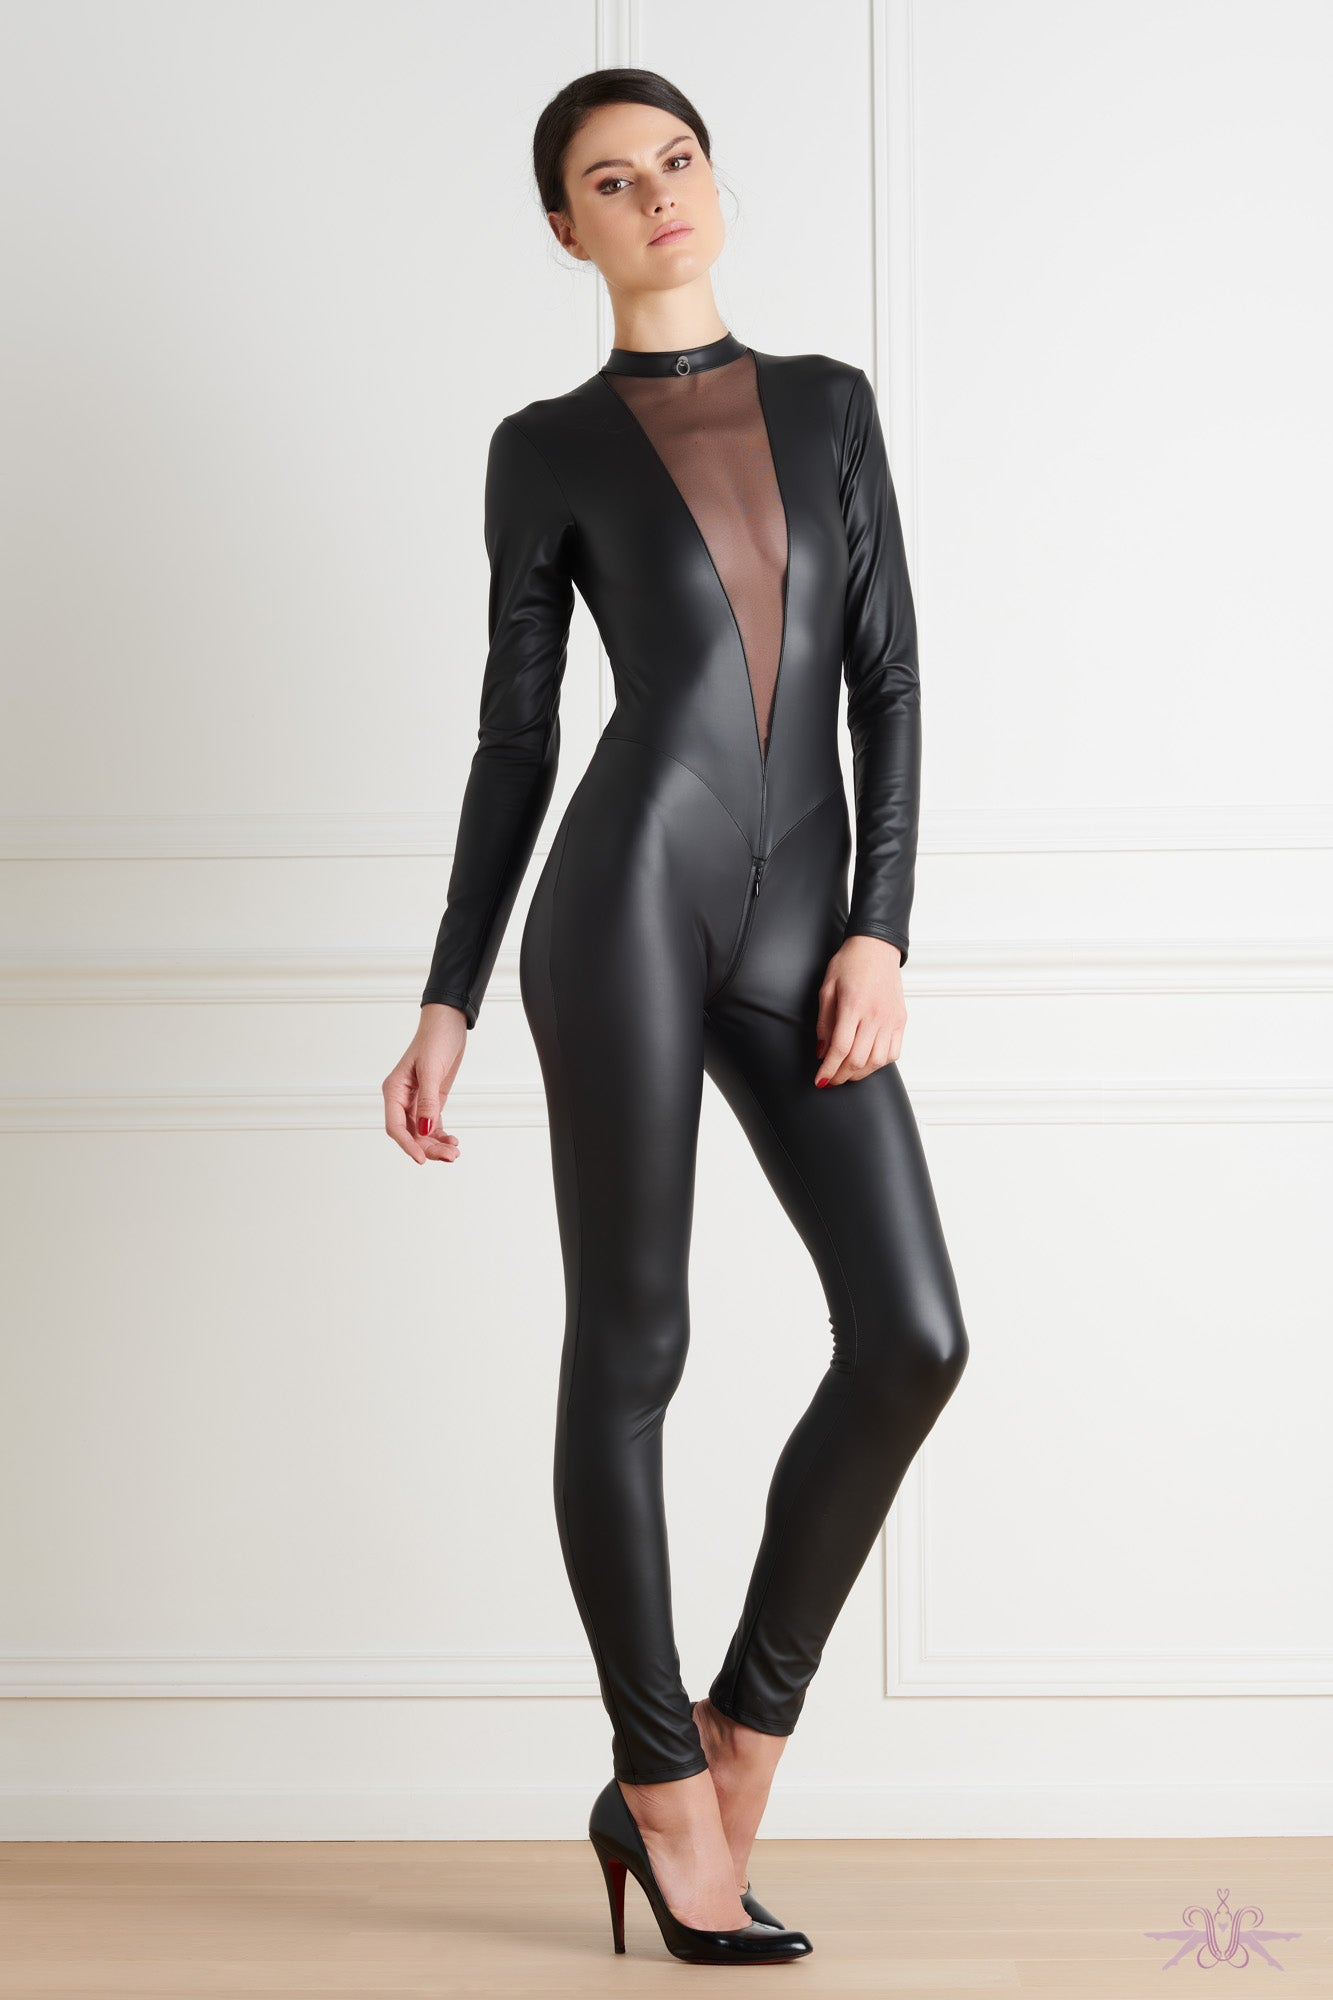 Maison Close Chambre Noire Catsuit - Mayfair Stockings